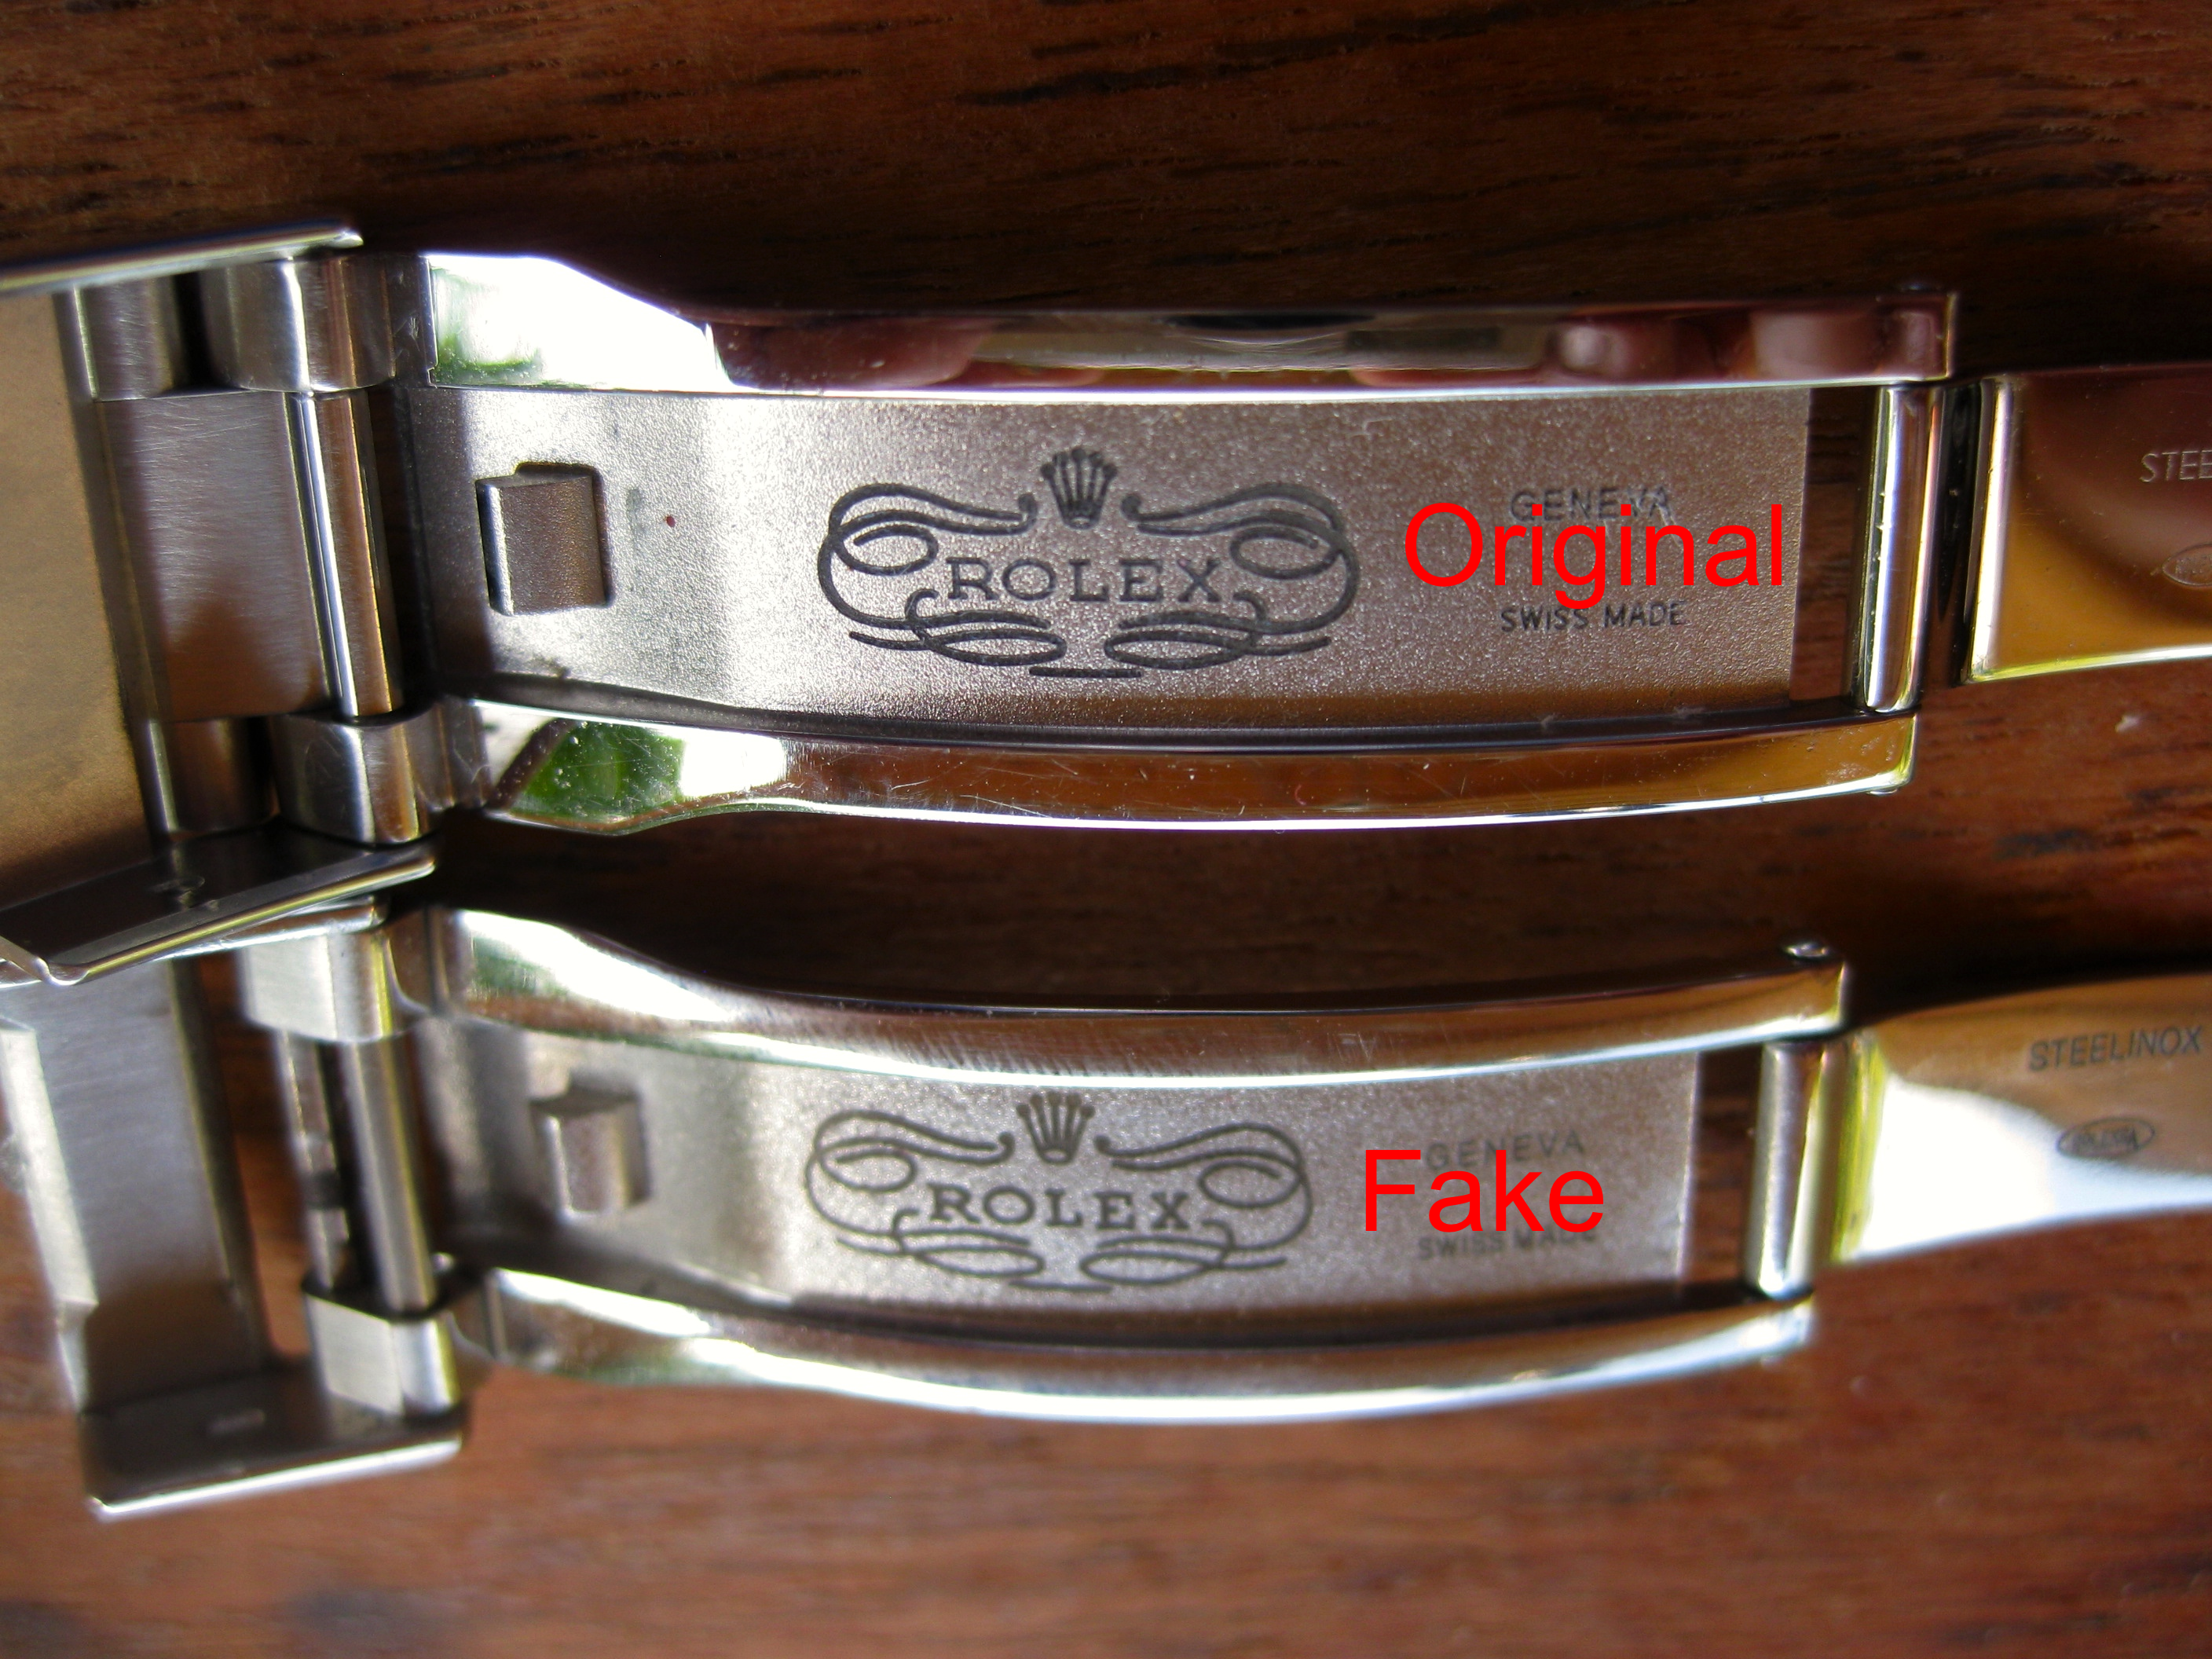 Rolex Glidelock – Original vs. Fake